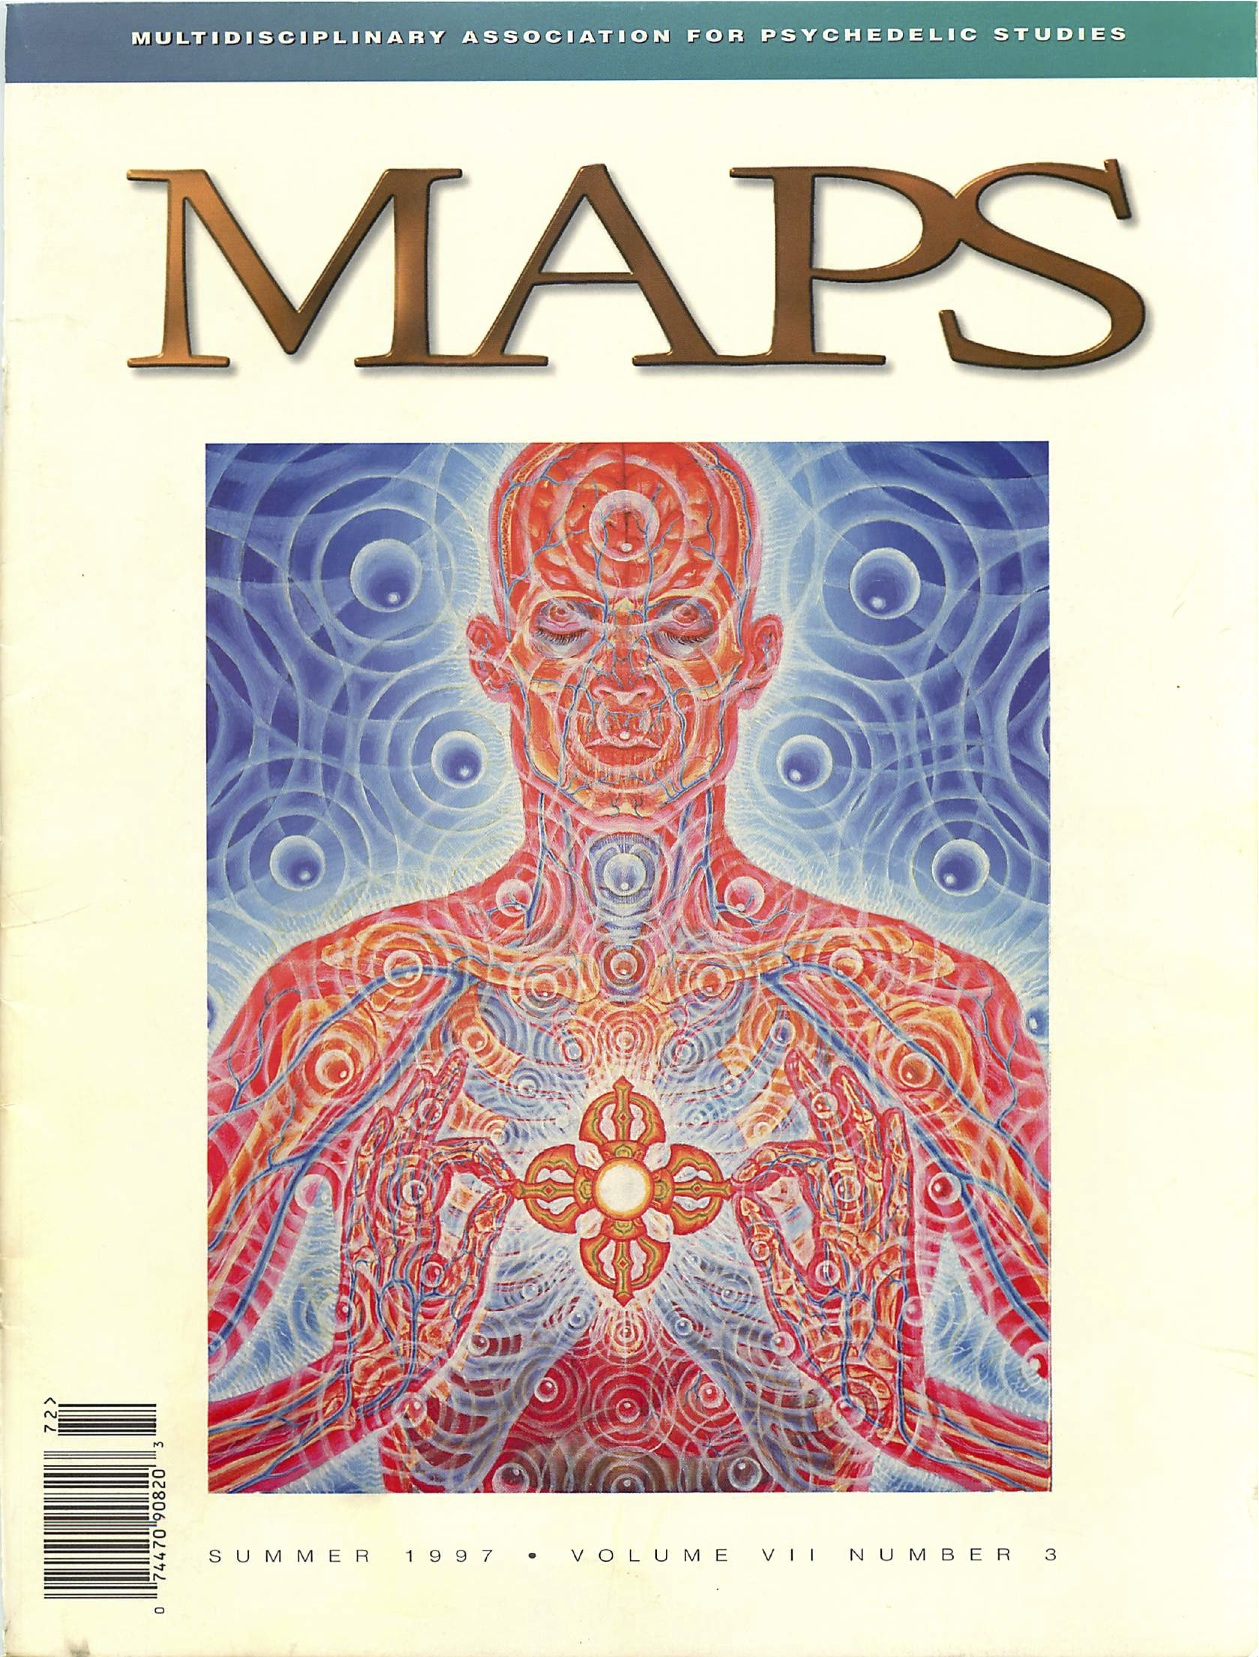 MAPS Bulletin Summer 1997: Vol. 07, No. 3